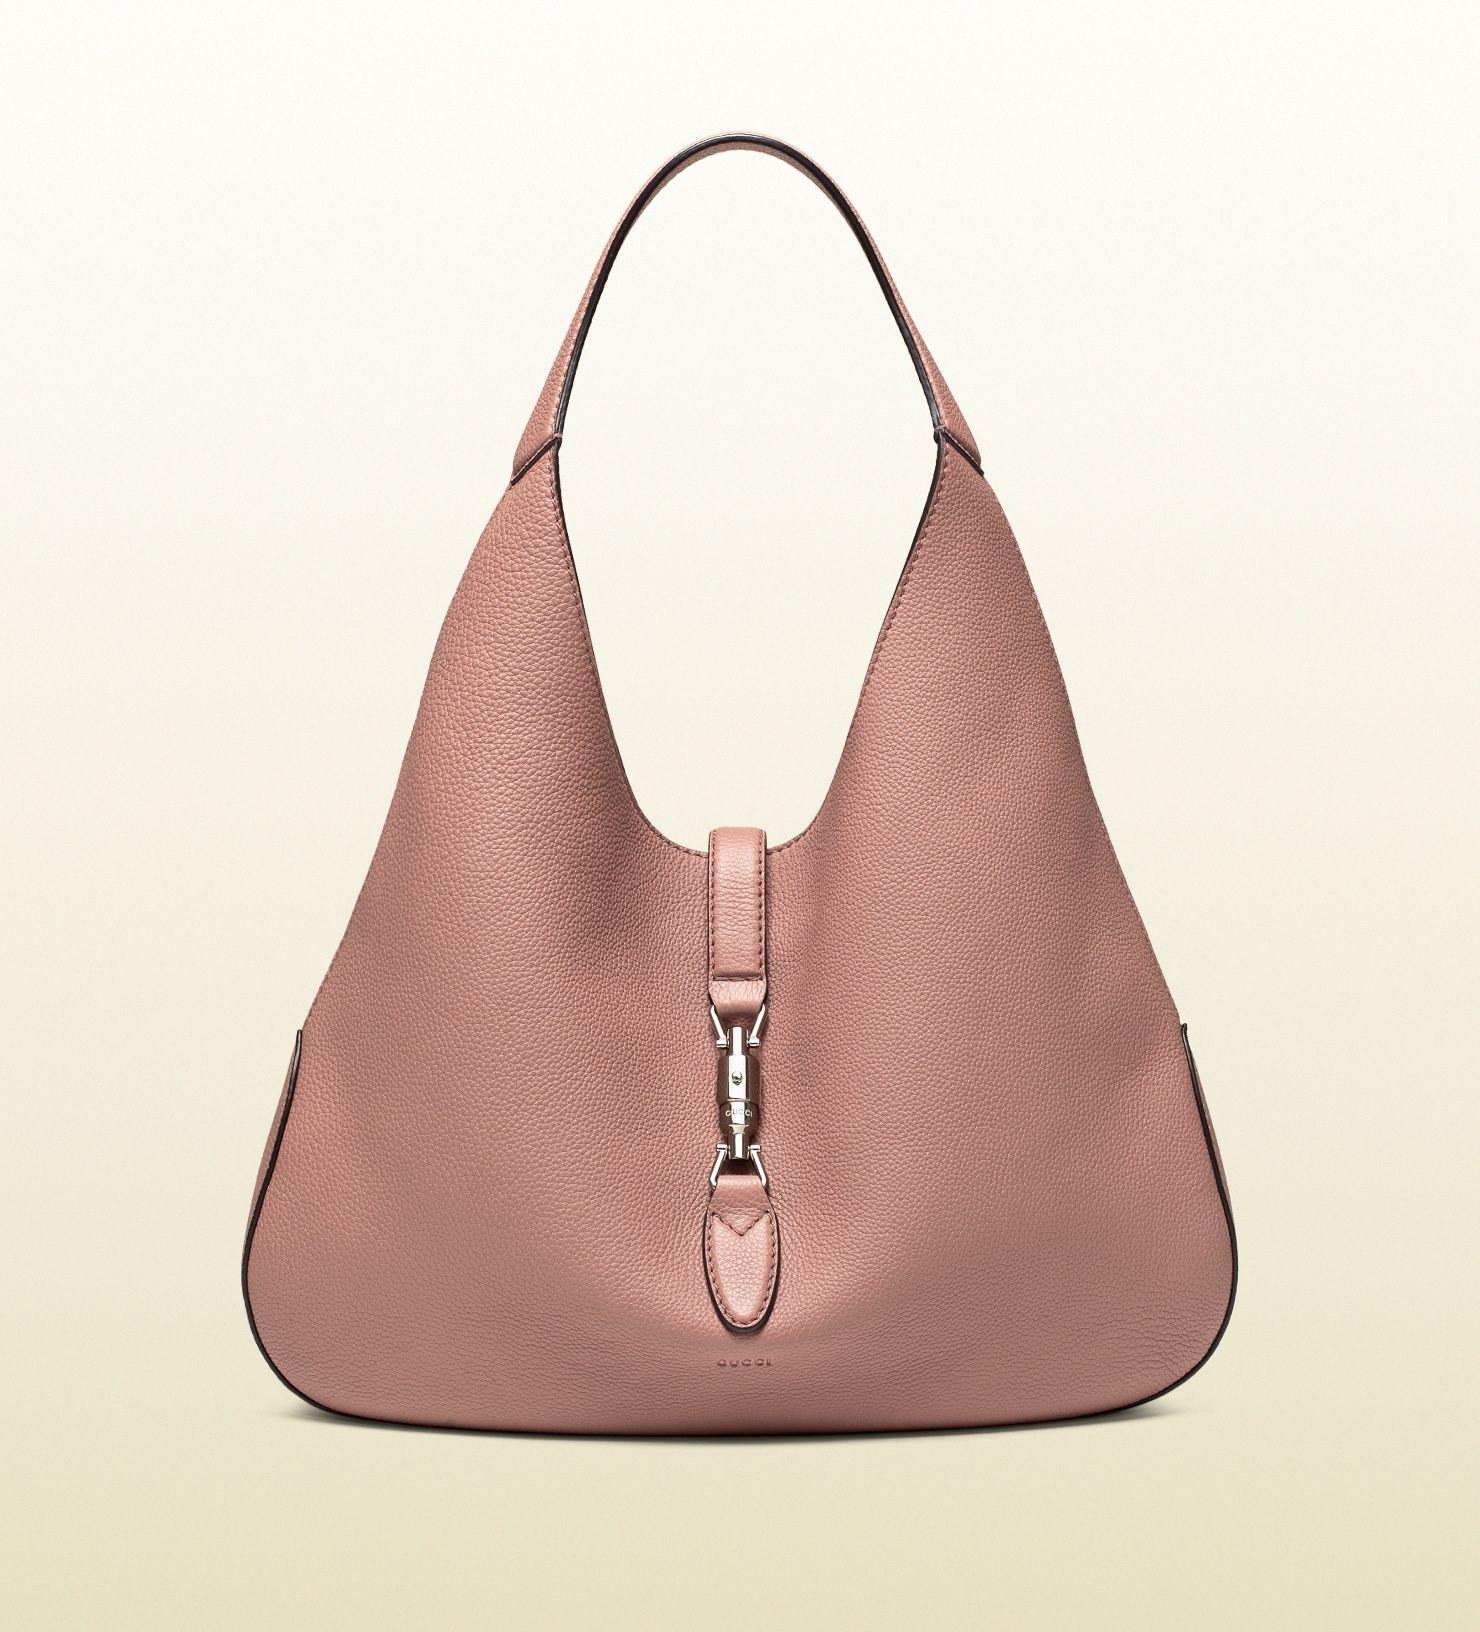 Gucci Jackie Antique Rose Soft Leather Hobo   2,990.00   PURSES ... 29fe97d0a8